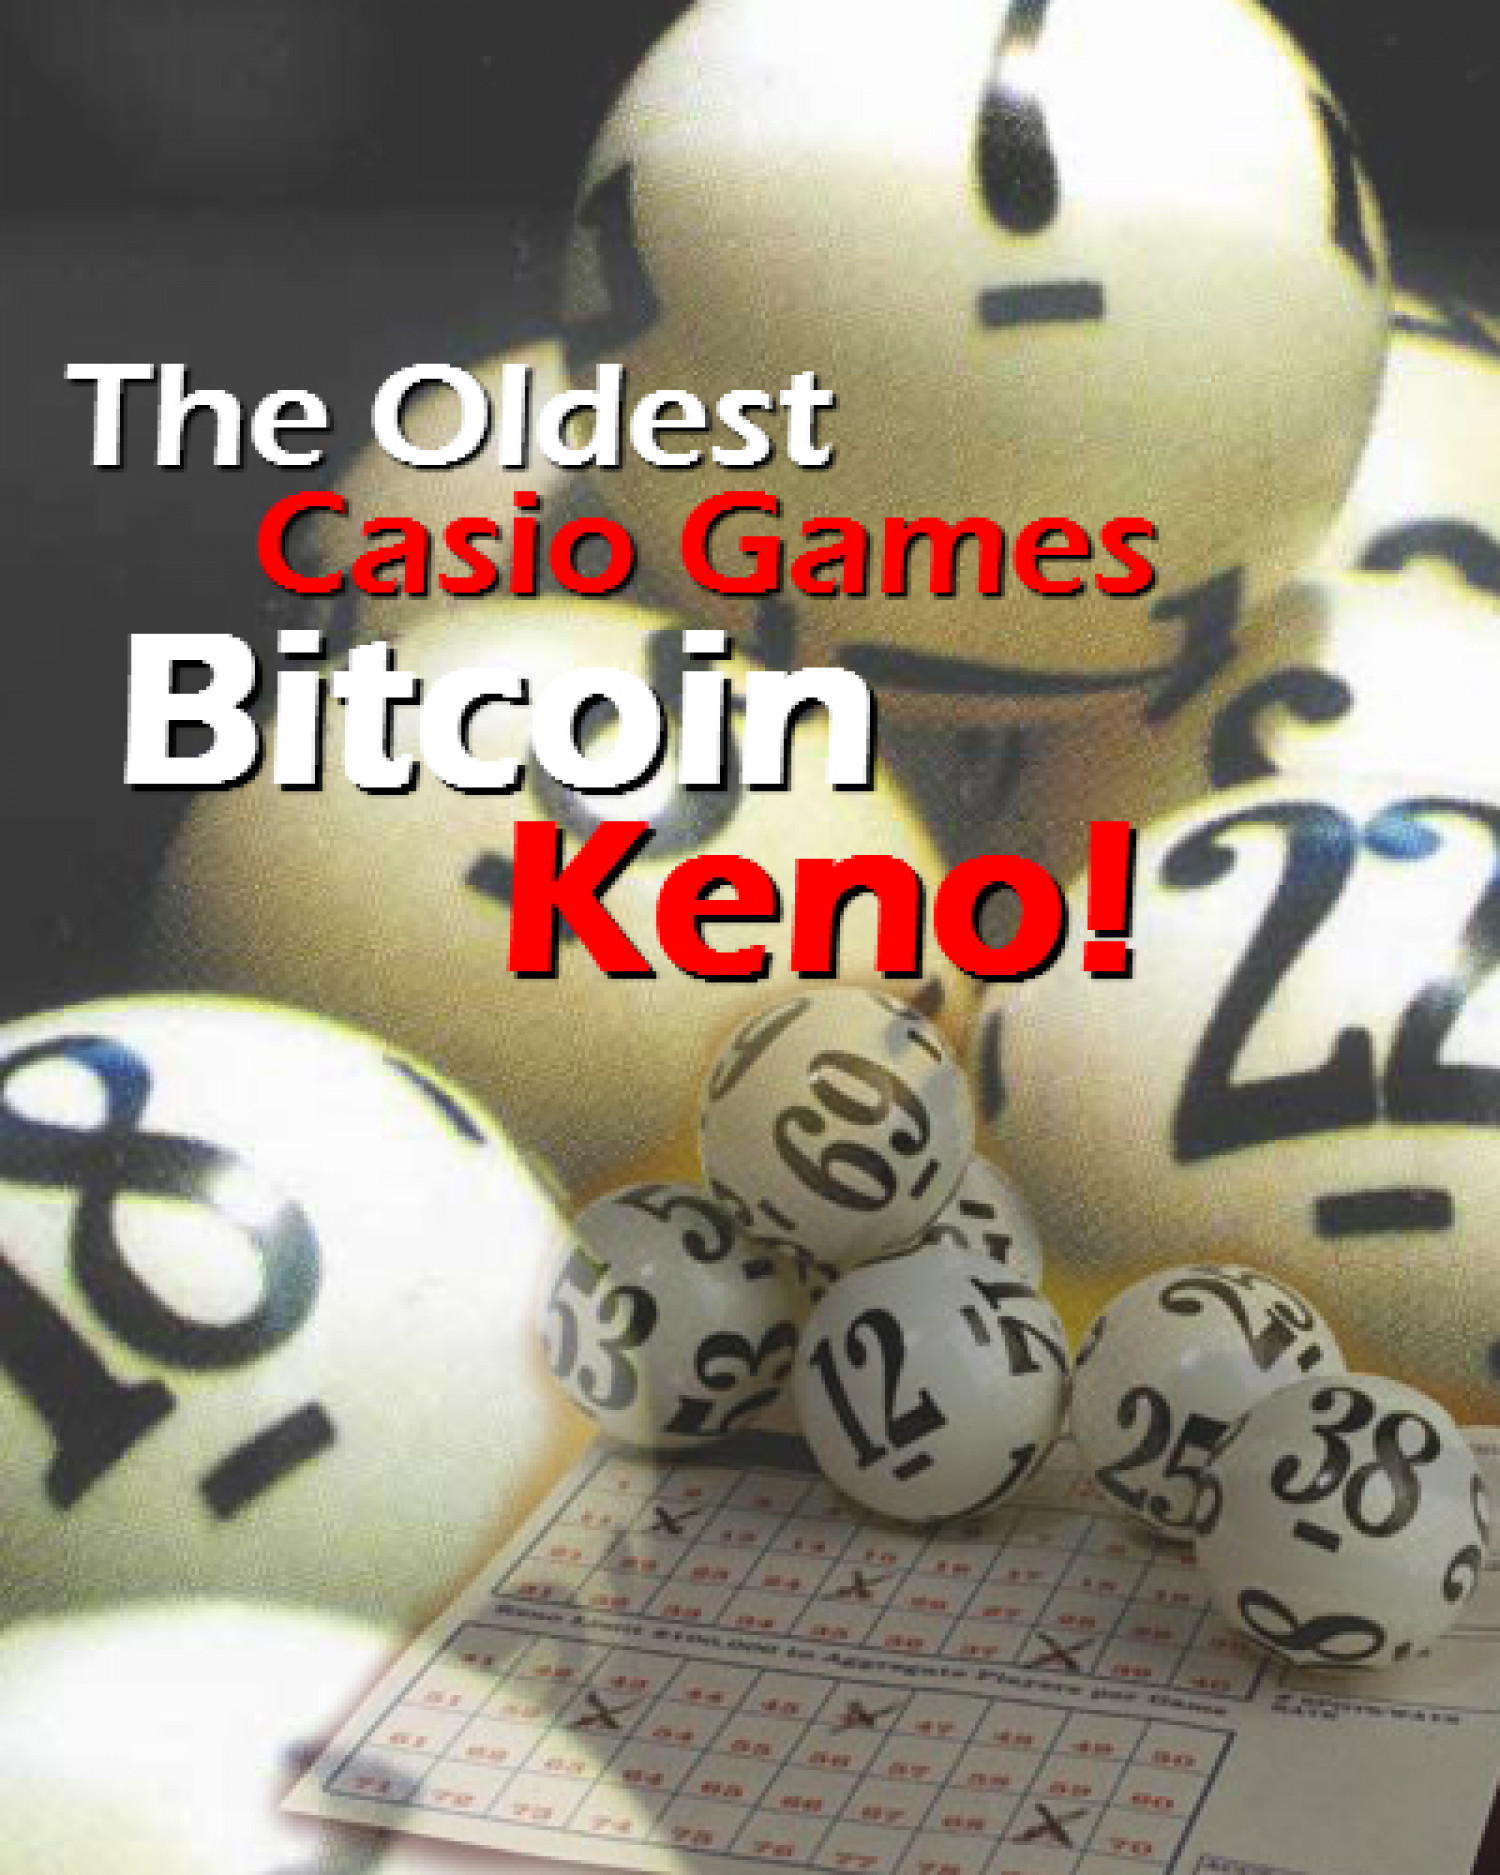 The Oldest Casino Game Infographic